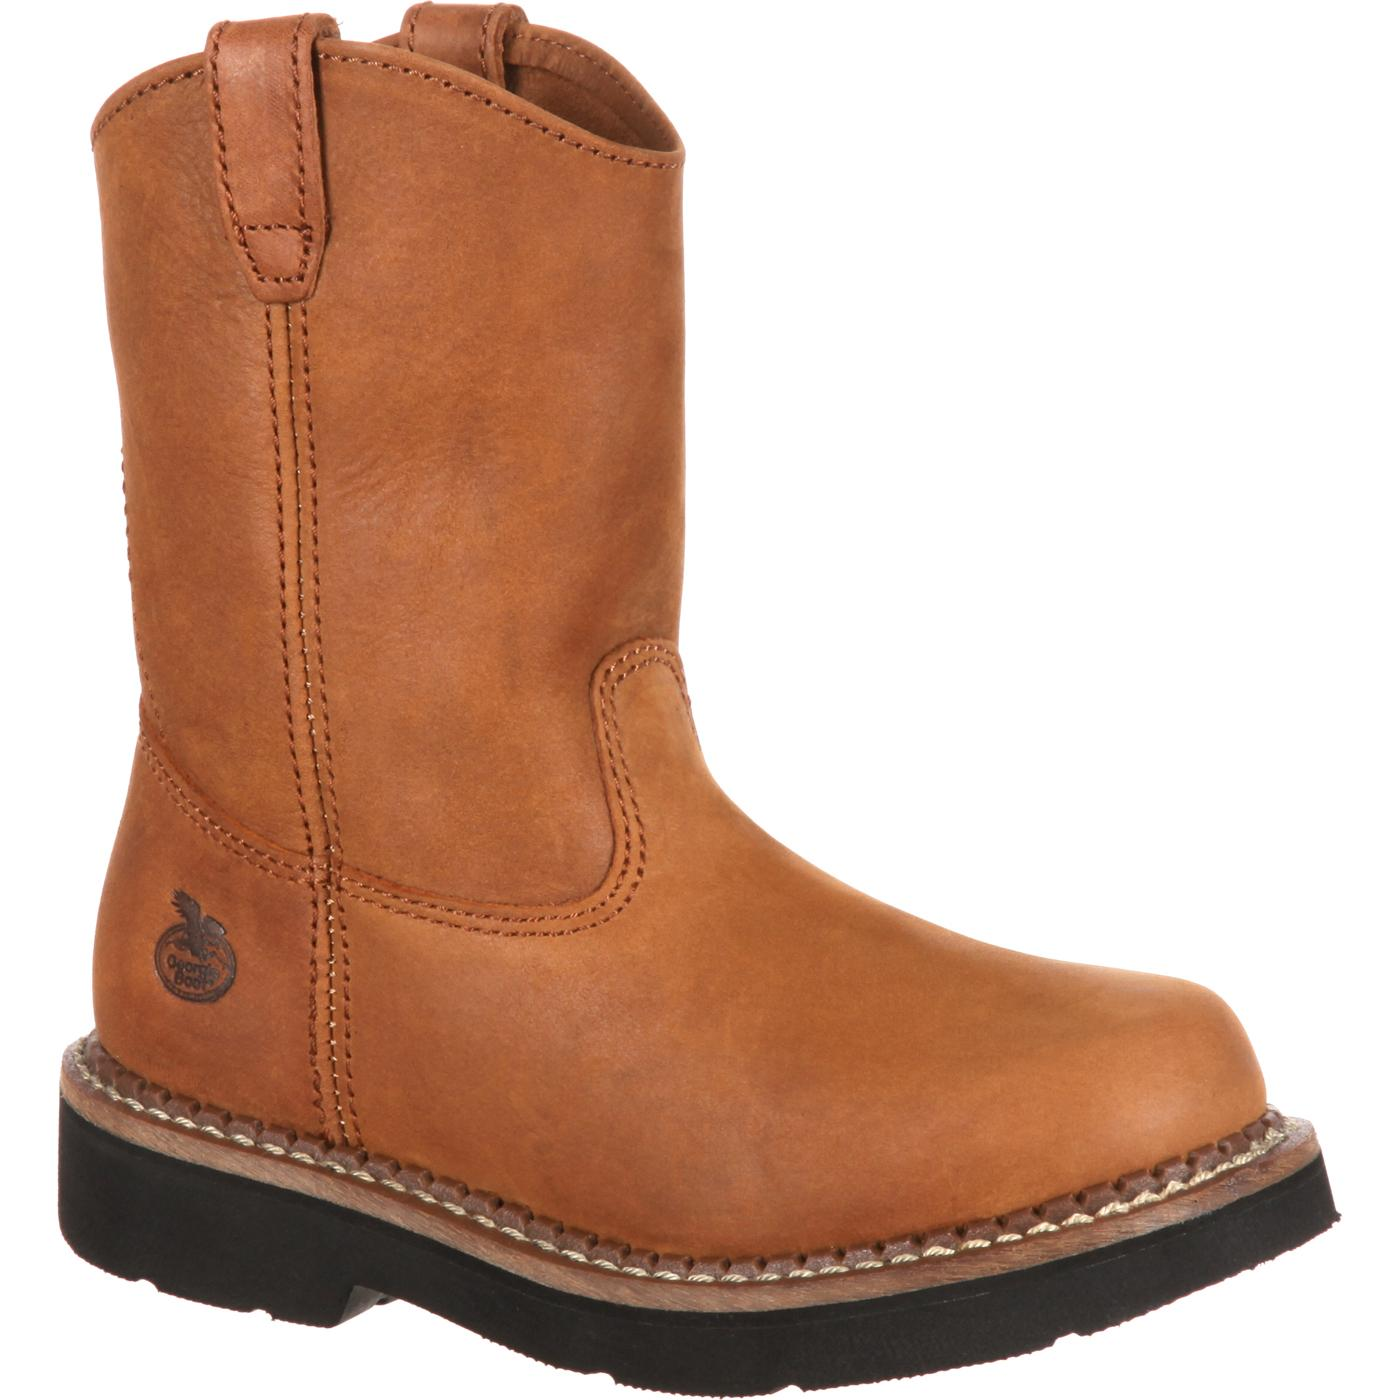 08646e05225 Georgia Boot Kids' Wellington Boot